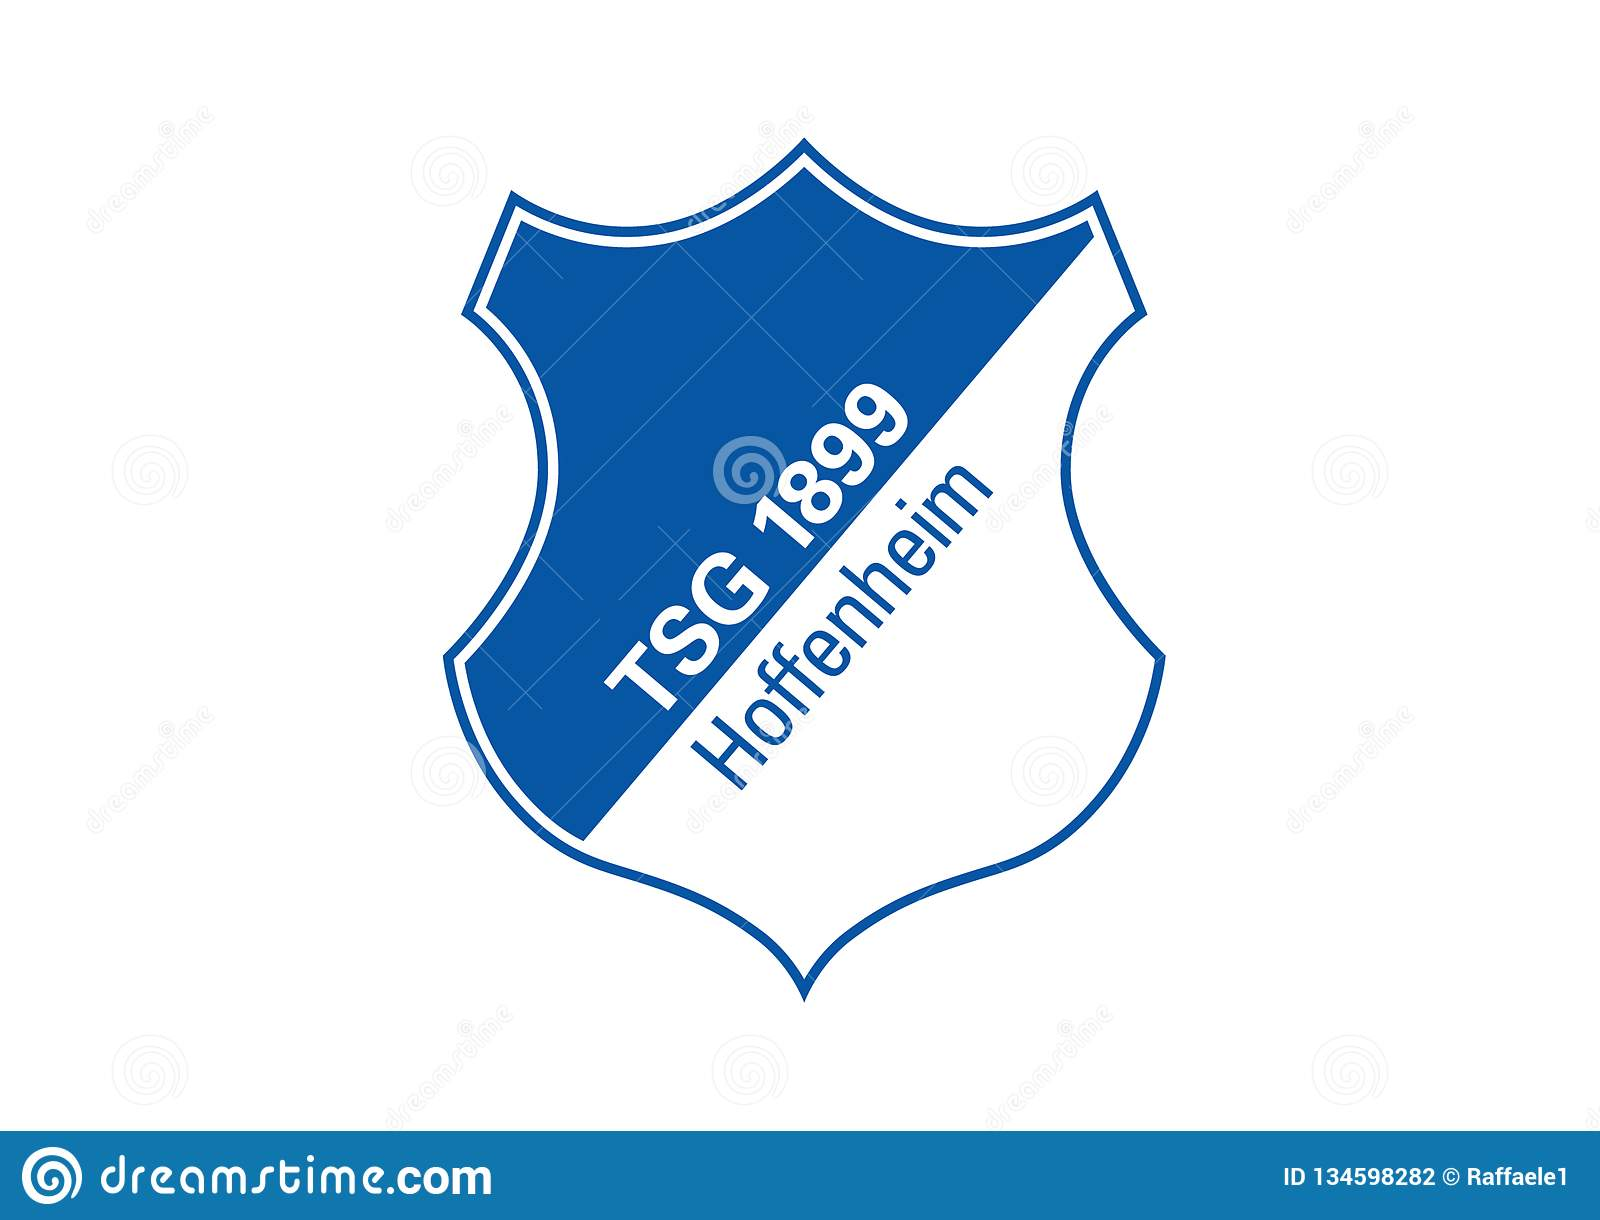 Map Of Germany Hoffenheim.Tsg Hoffenheim Logo Editorial Photography Illustration Of